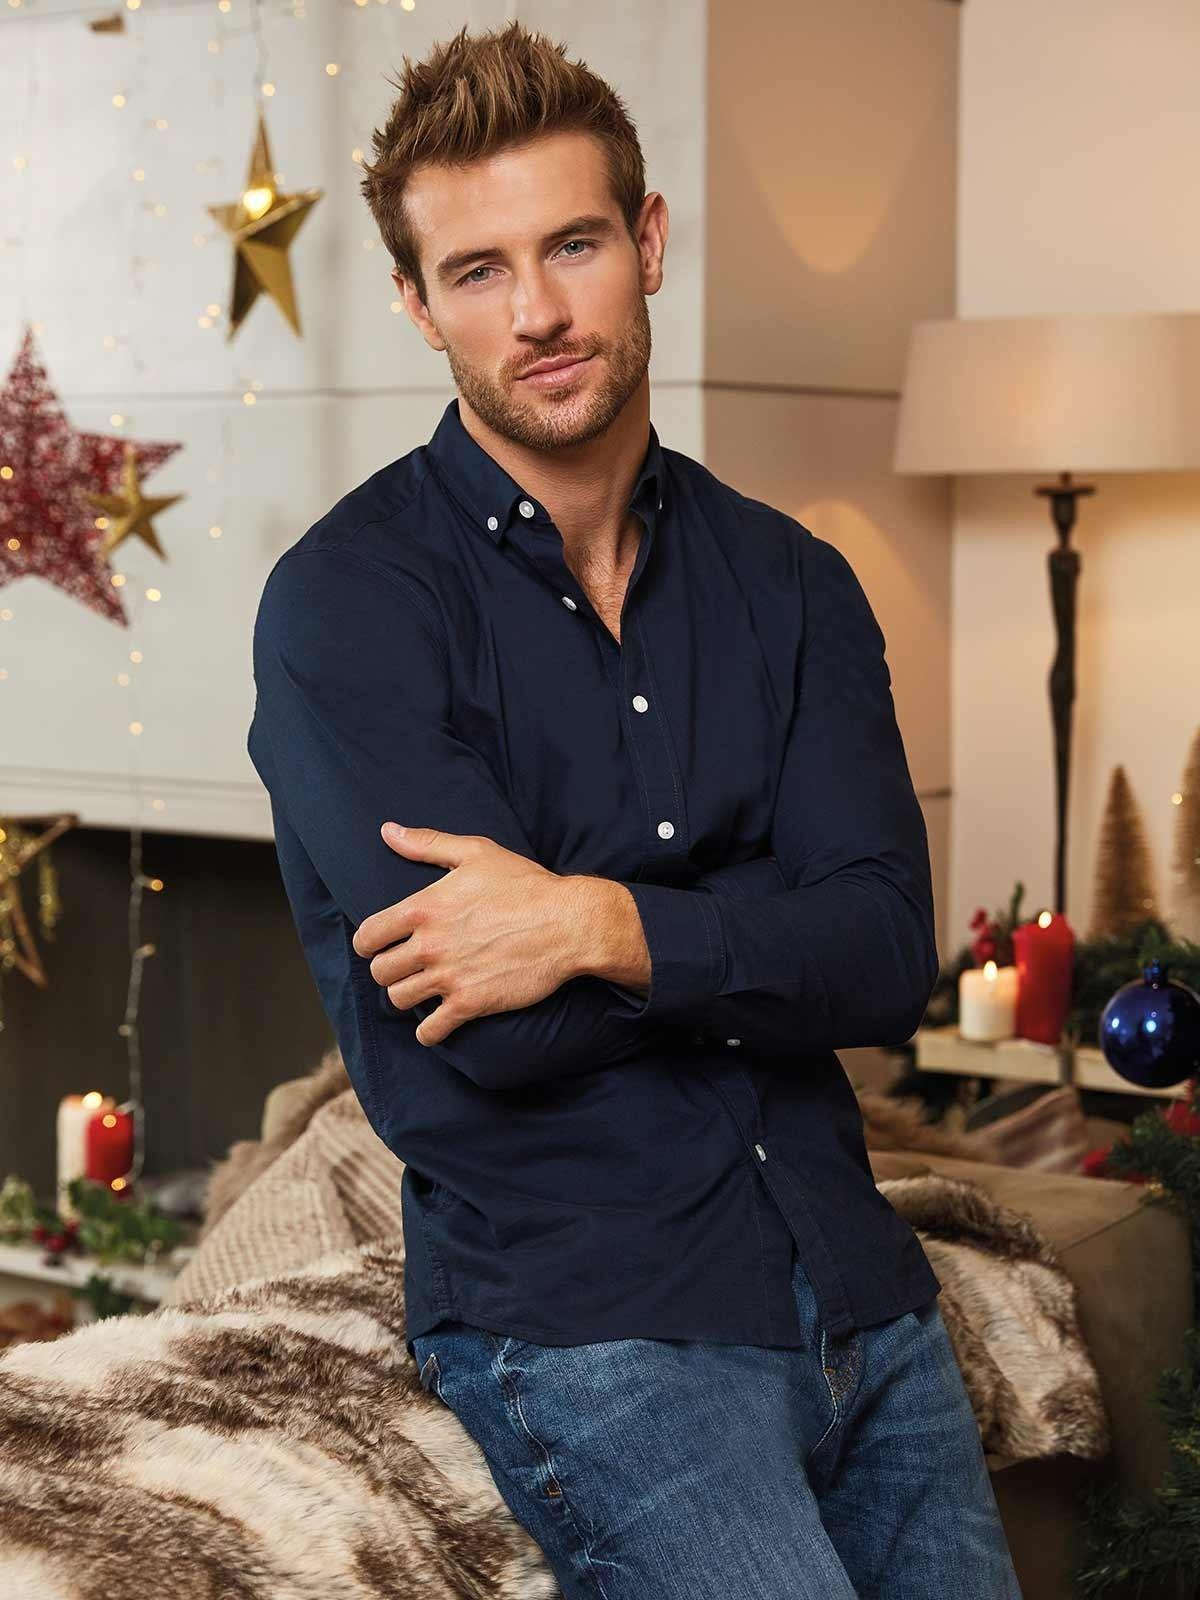 You can never go wrong with a long sleeved shirt and jeans – rock the smart casual look for NYE!